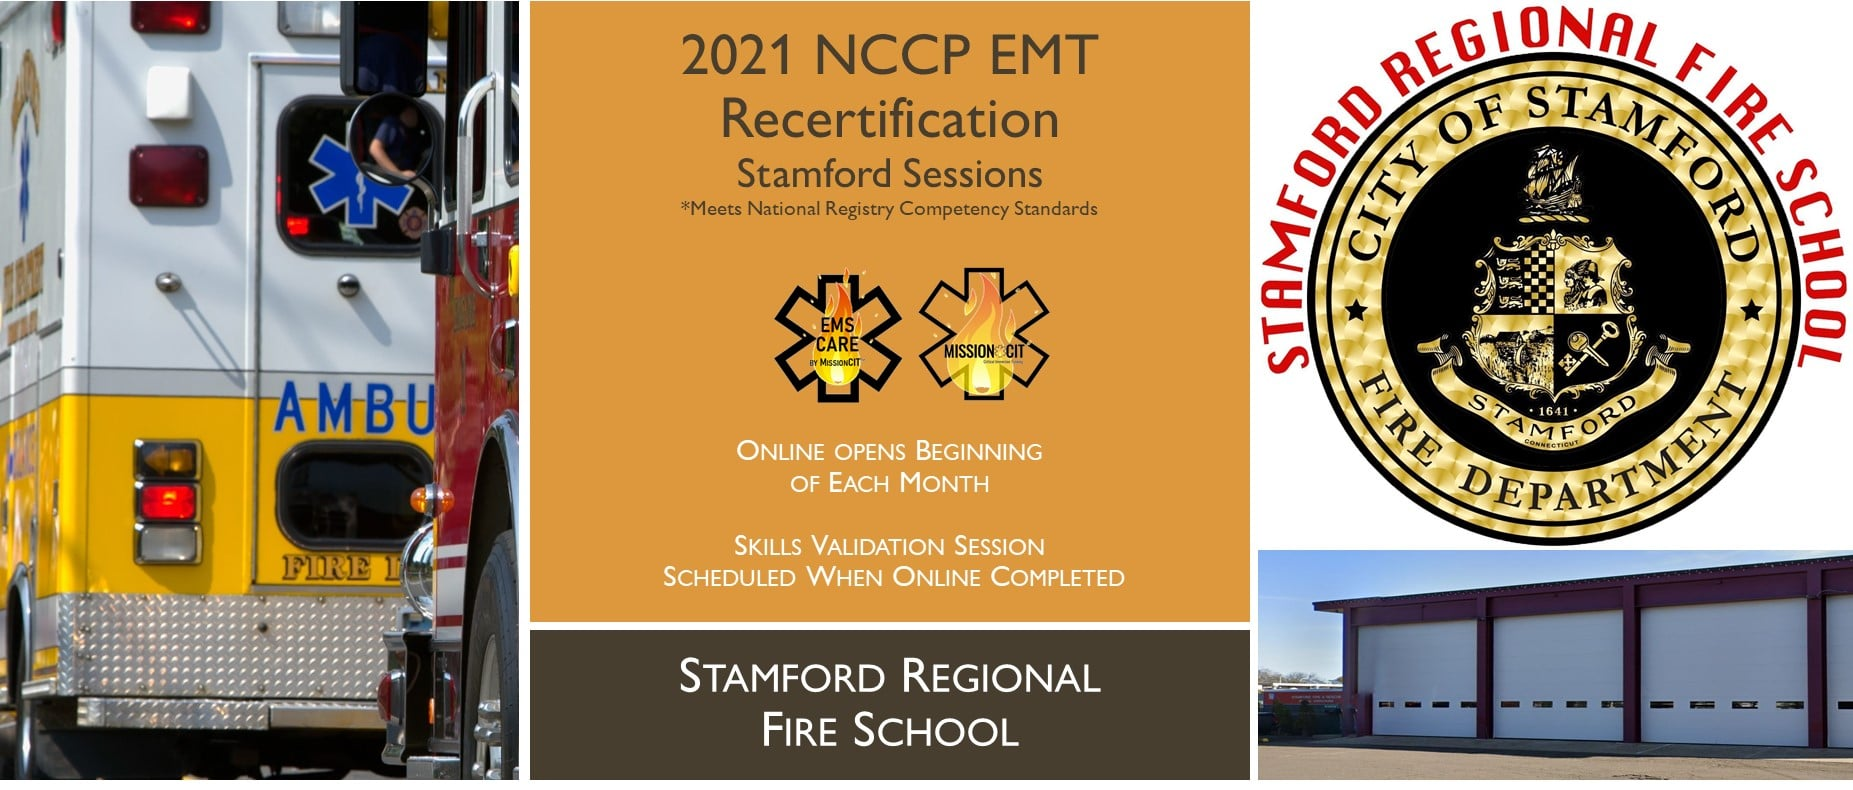 EMT NCCP 2021 Recertification Course   Stamford Sessions